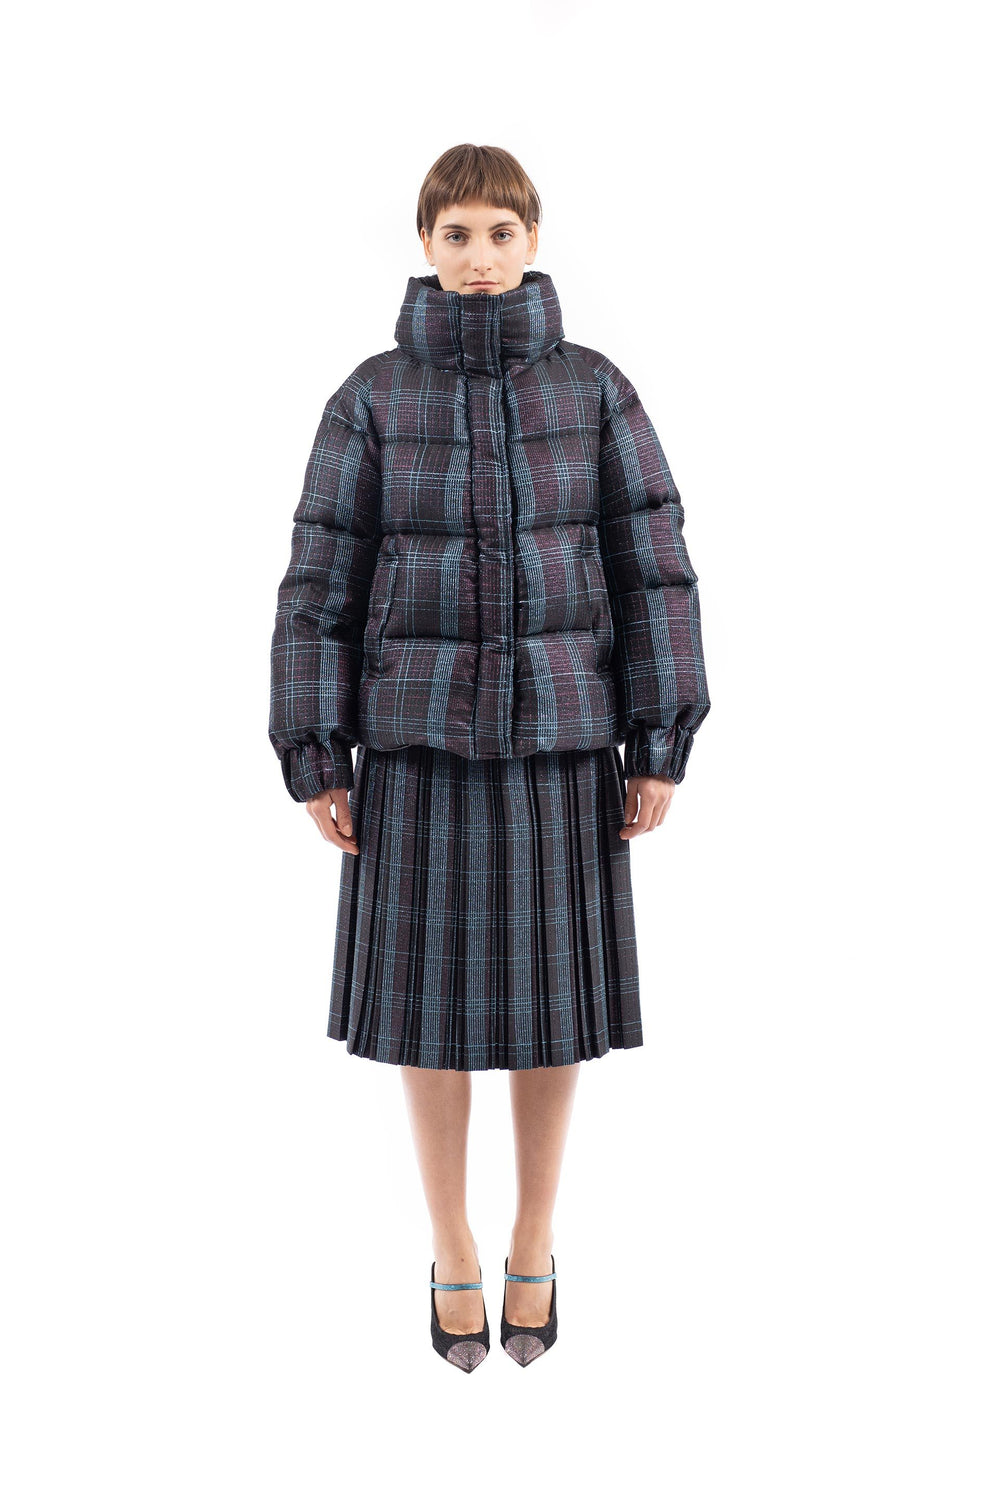 Gradient Lurex puffer jacket